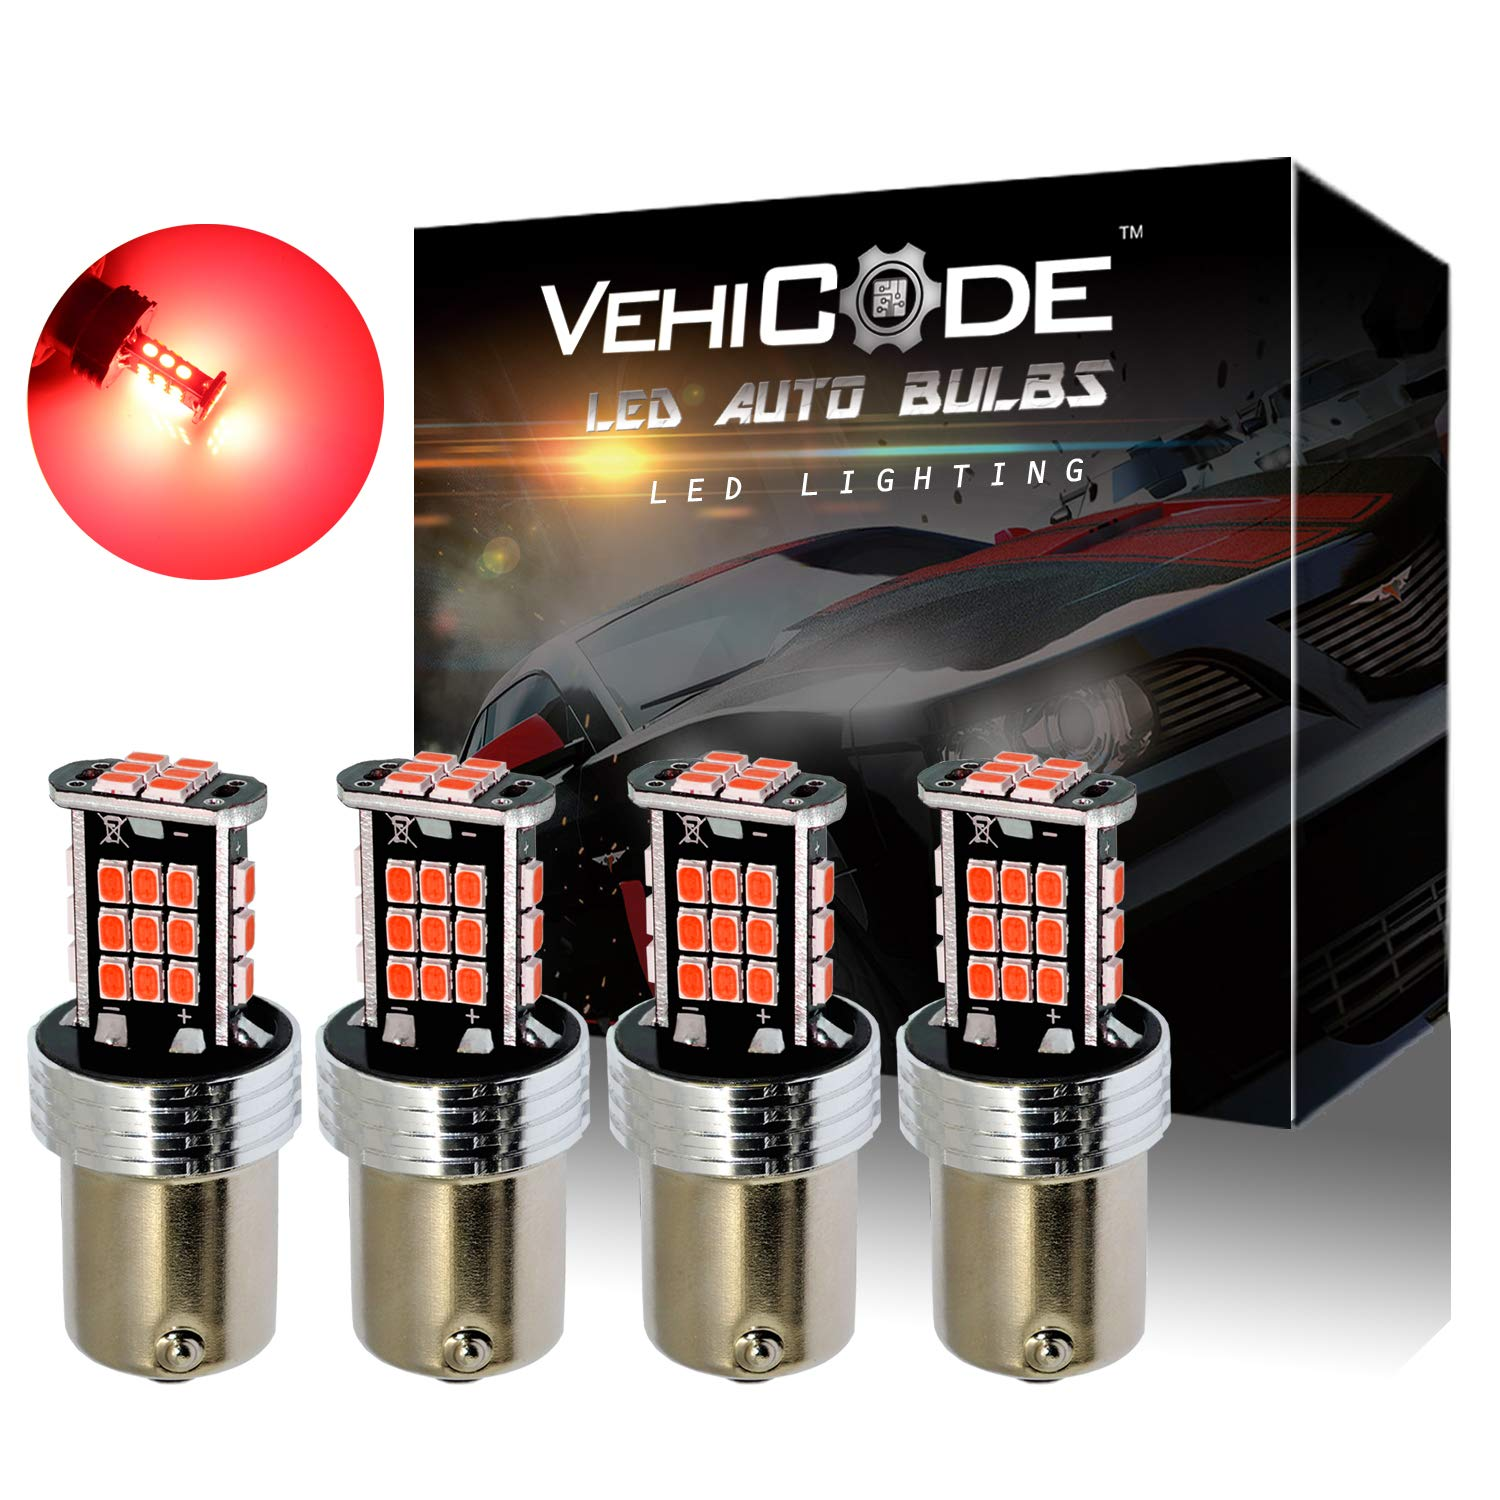 VehiCode Super Bright 1200 Lumens 3157 (3156/3047/3057/3457/3757/4057/4114/T25) LED Light Bulb (Red) Kit - Dual Function Replacement for Tail, Brake Stop Lights (4 Pack)